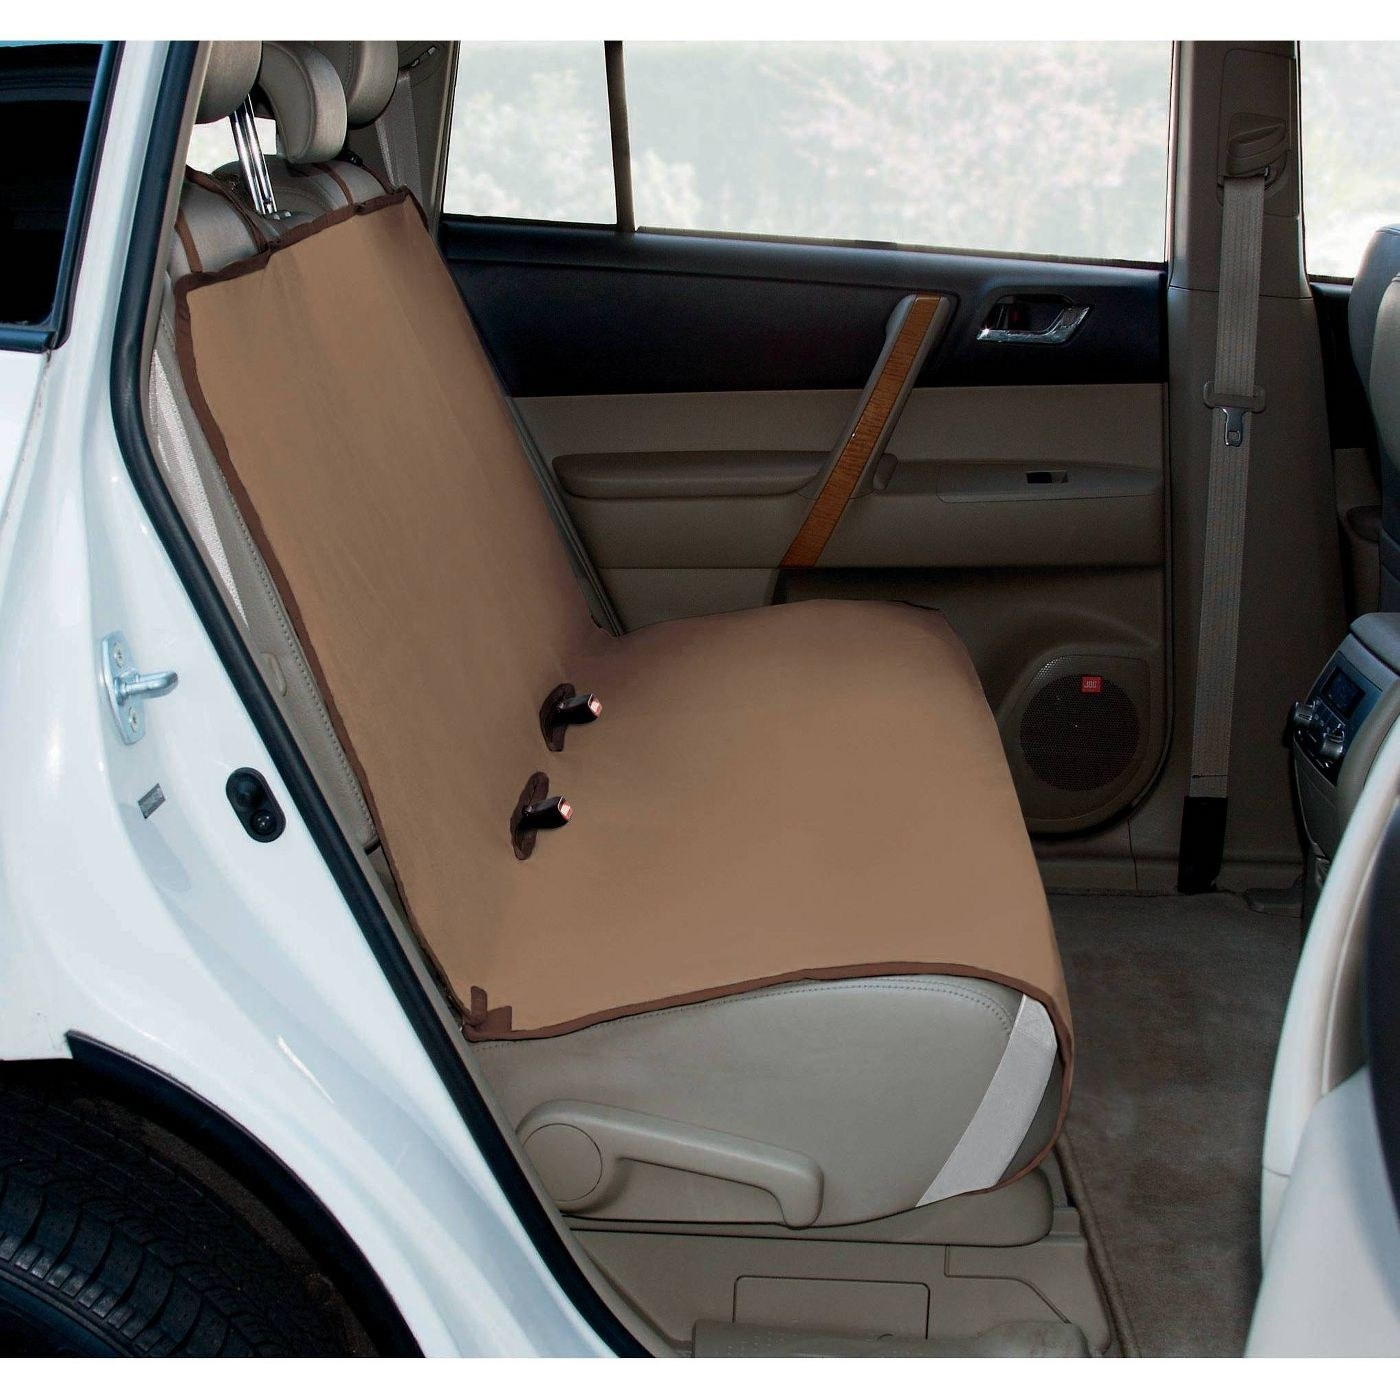 The seat cover in tan